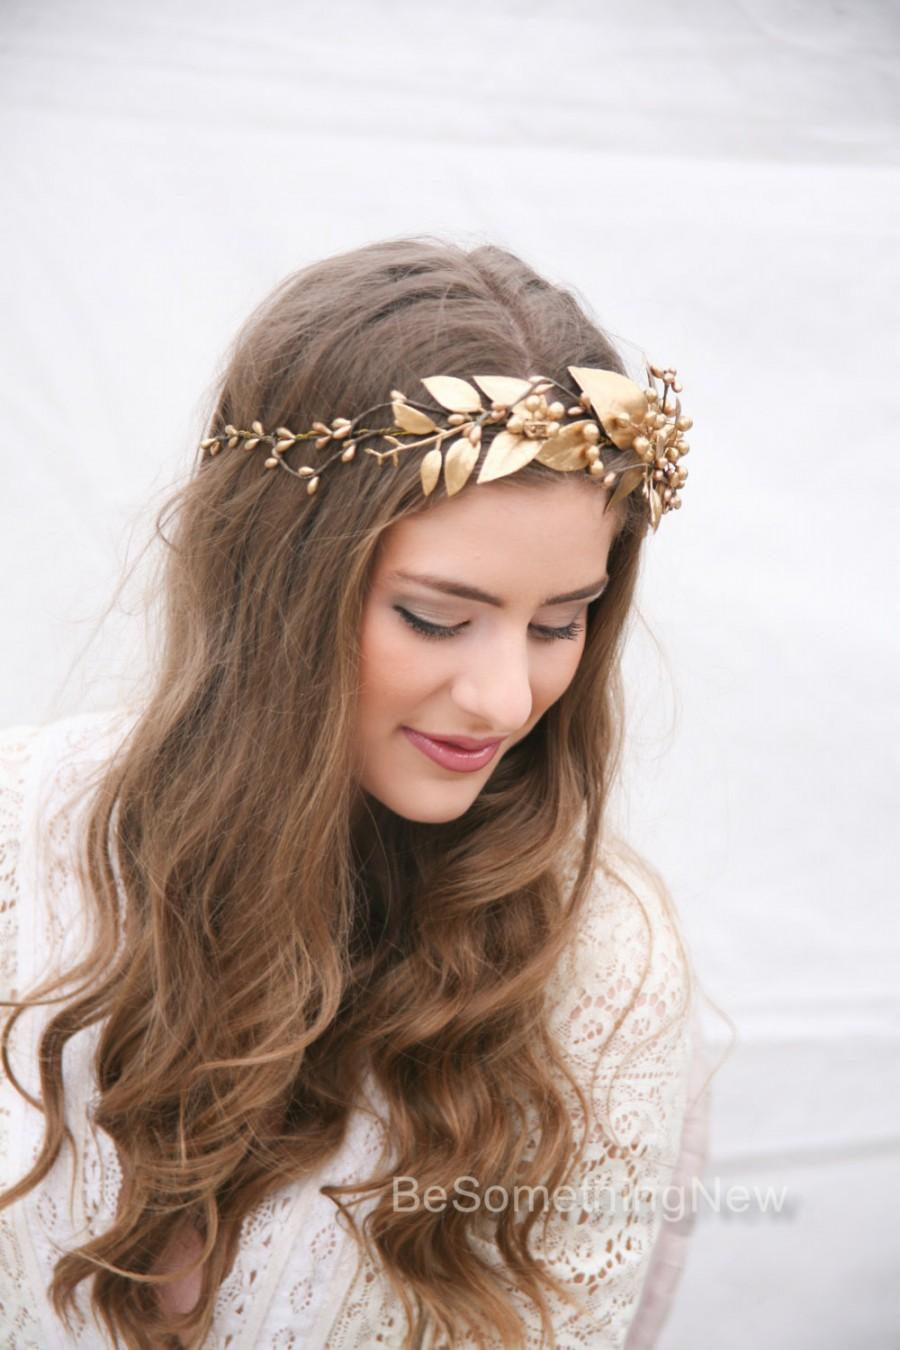 gold rustic bohemian wedding wreath, headpiece of golden leaves and